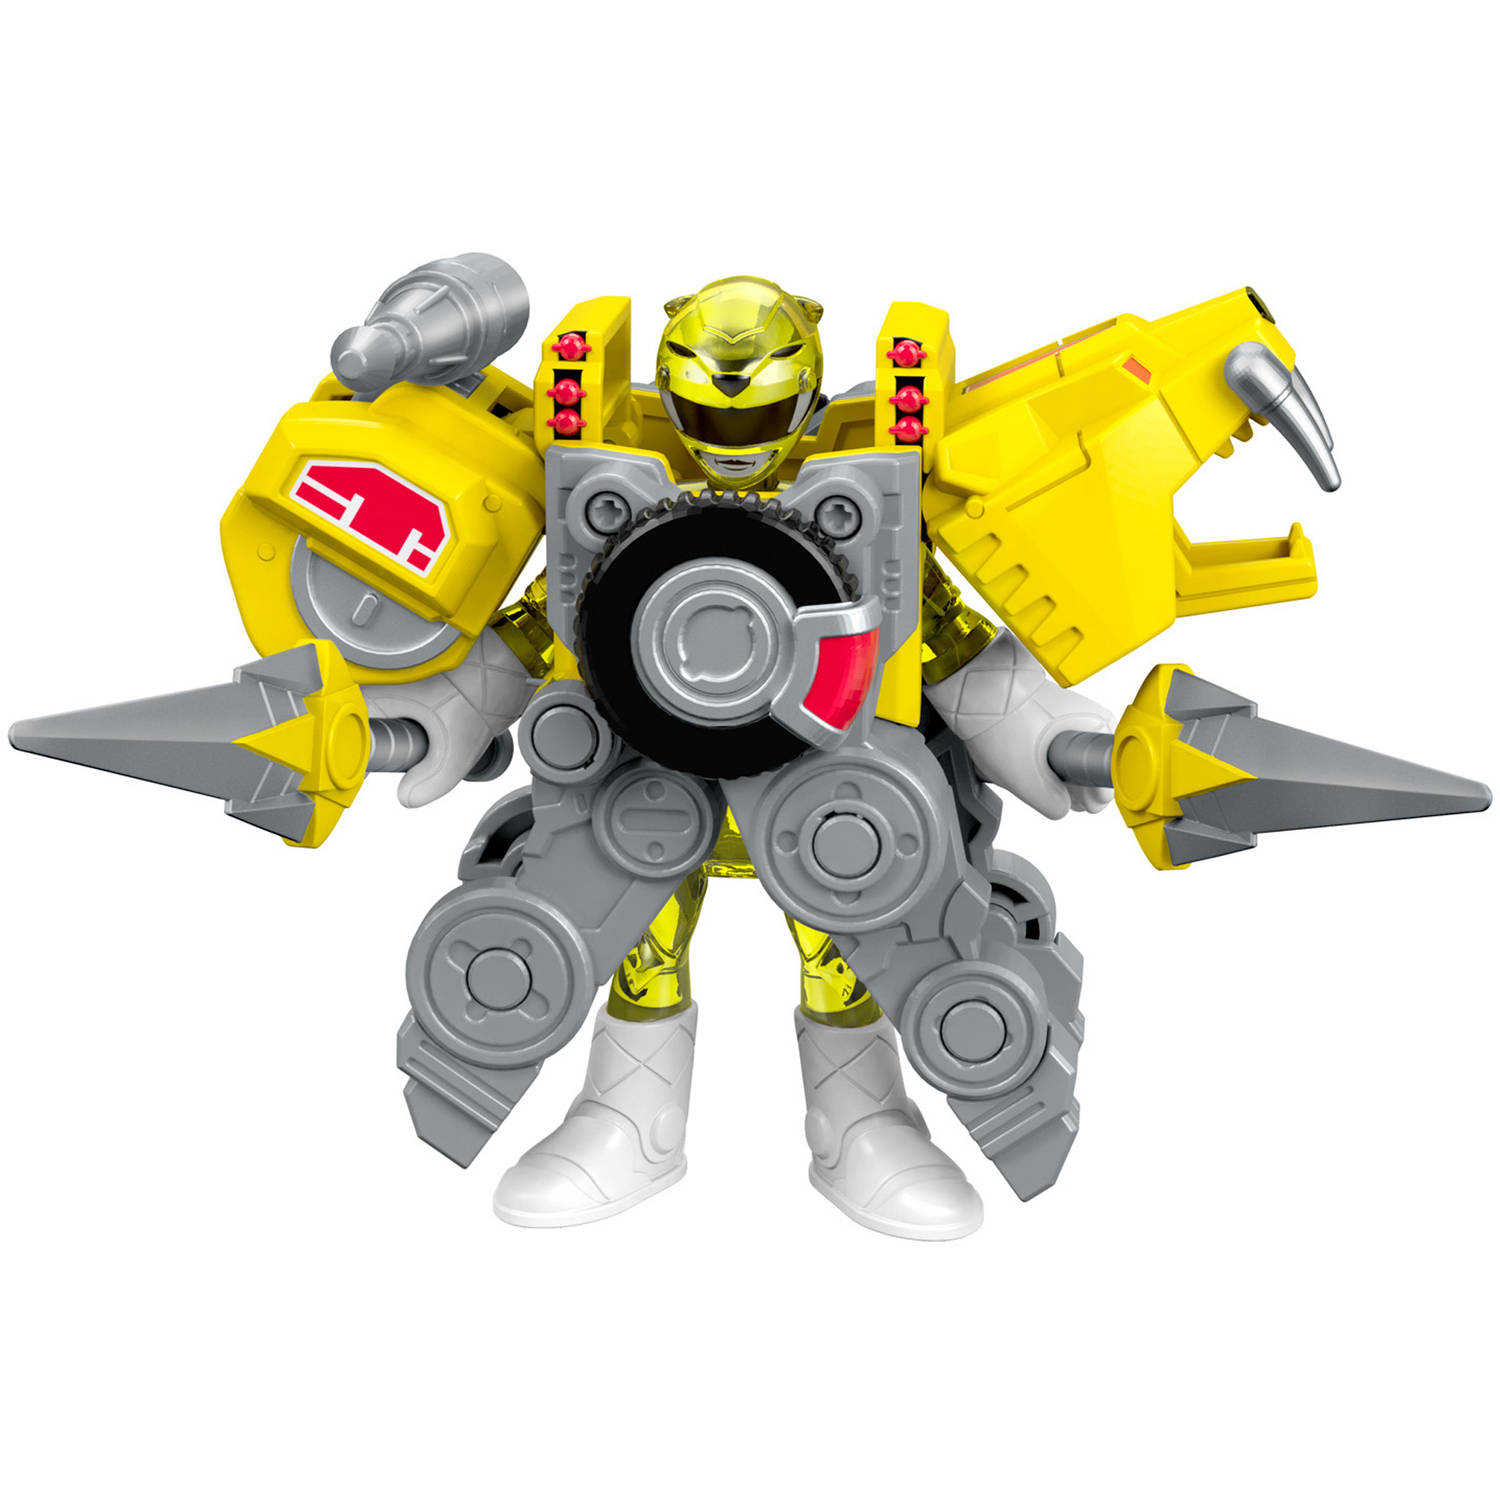 IMaginext Power Rangers Battle Armor Yellow Ranger by Fisher-Price